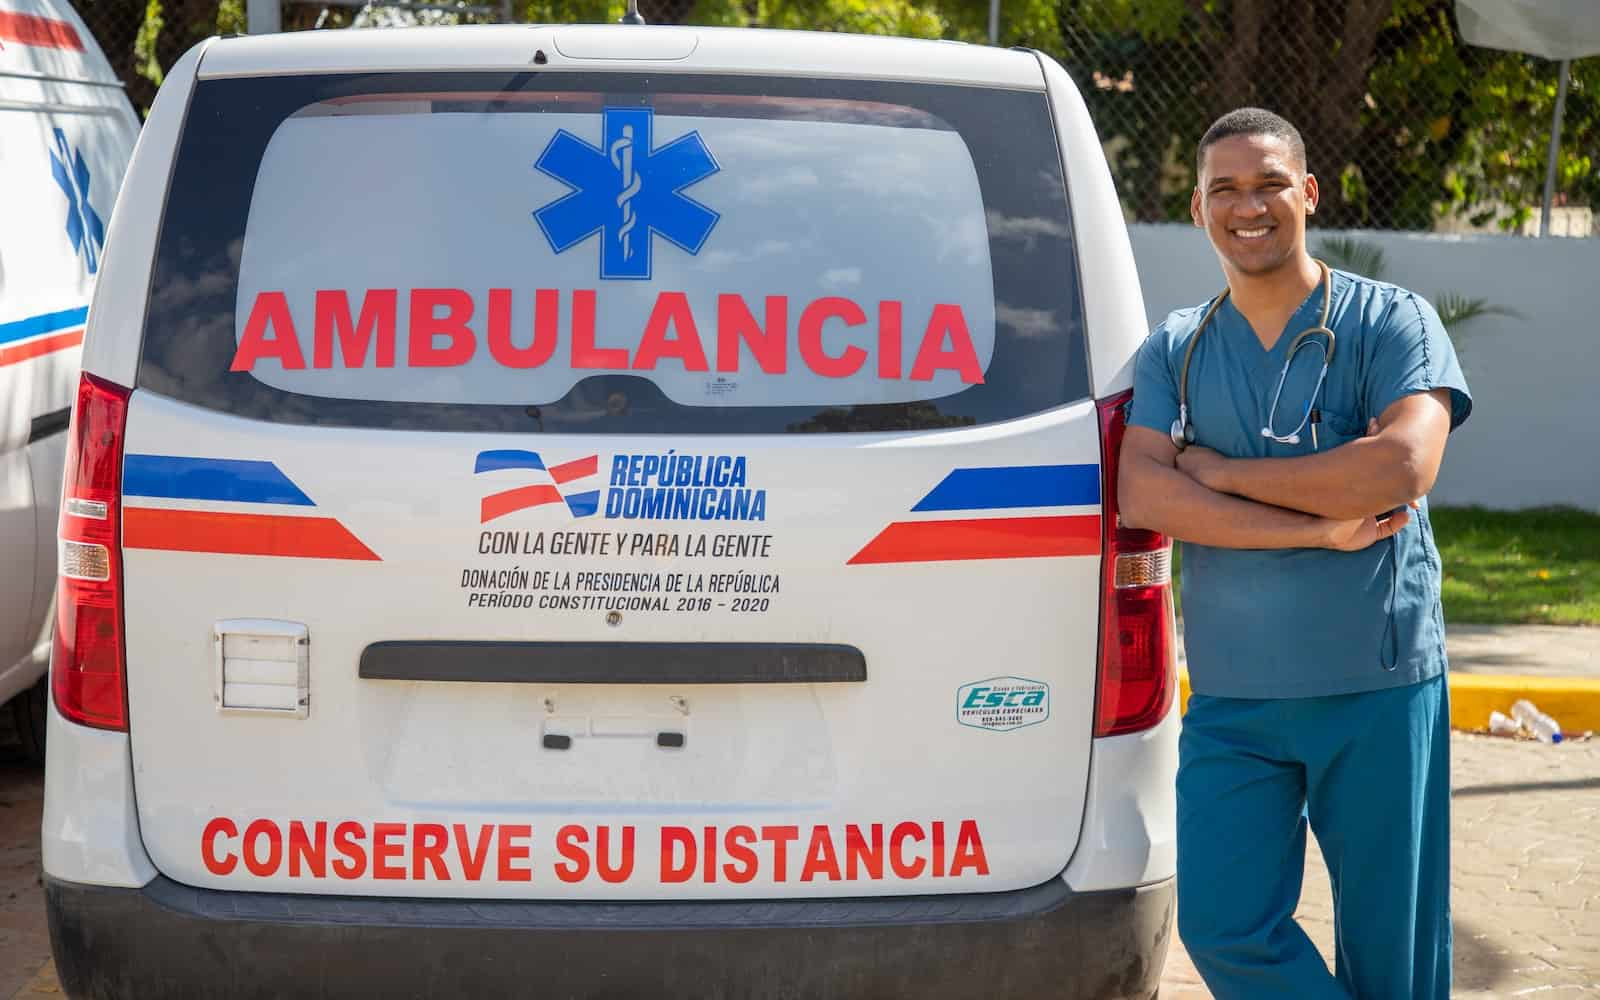 A man leans against an ambulance van.